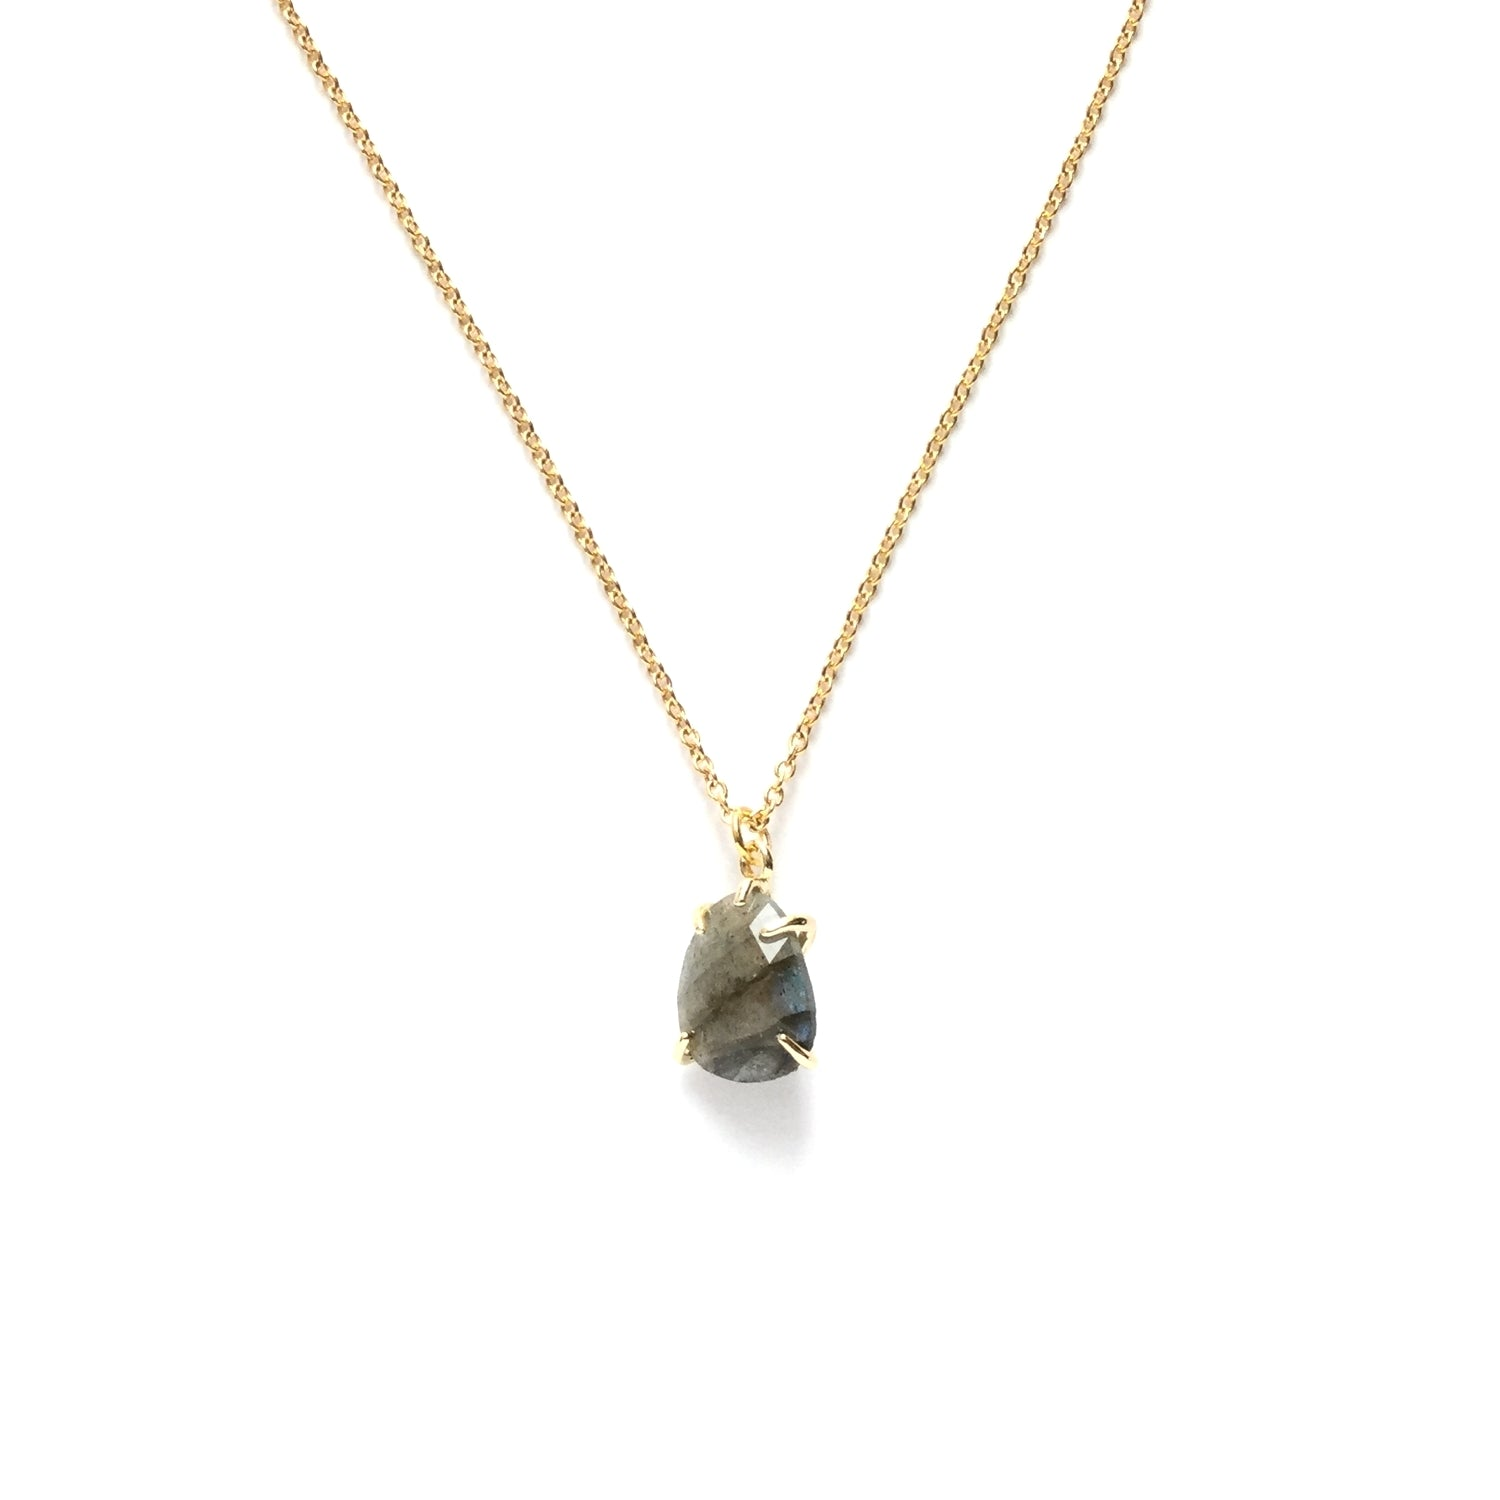 Teardrop labradorite gemstone in a gold plated prong setting necklace